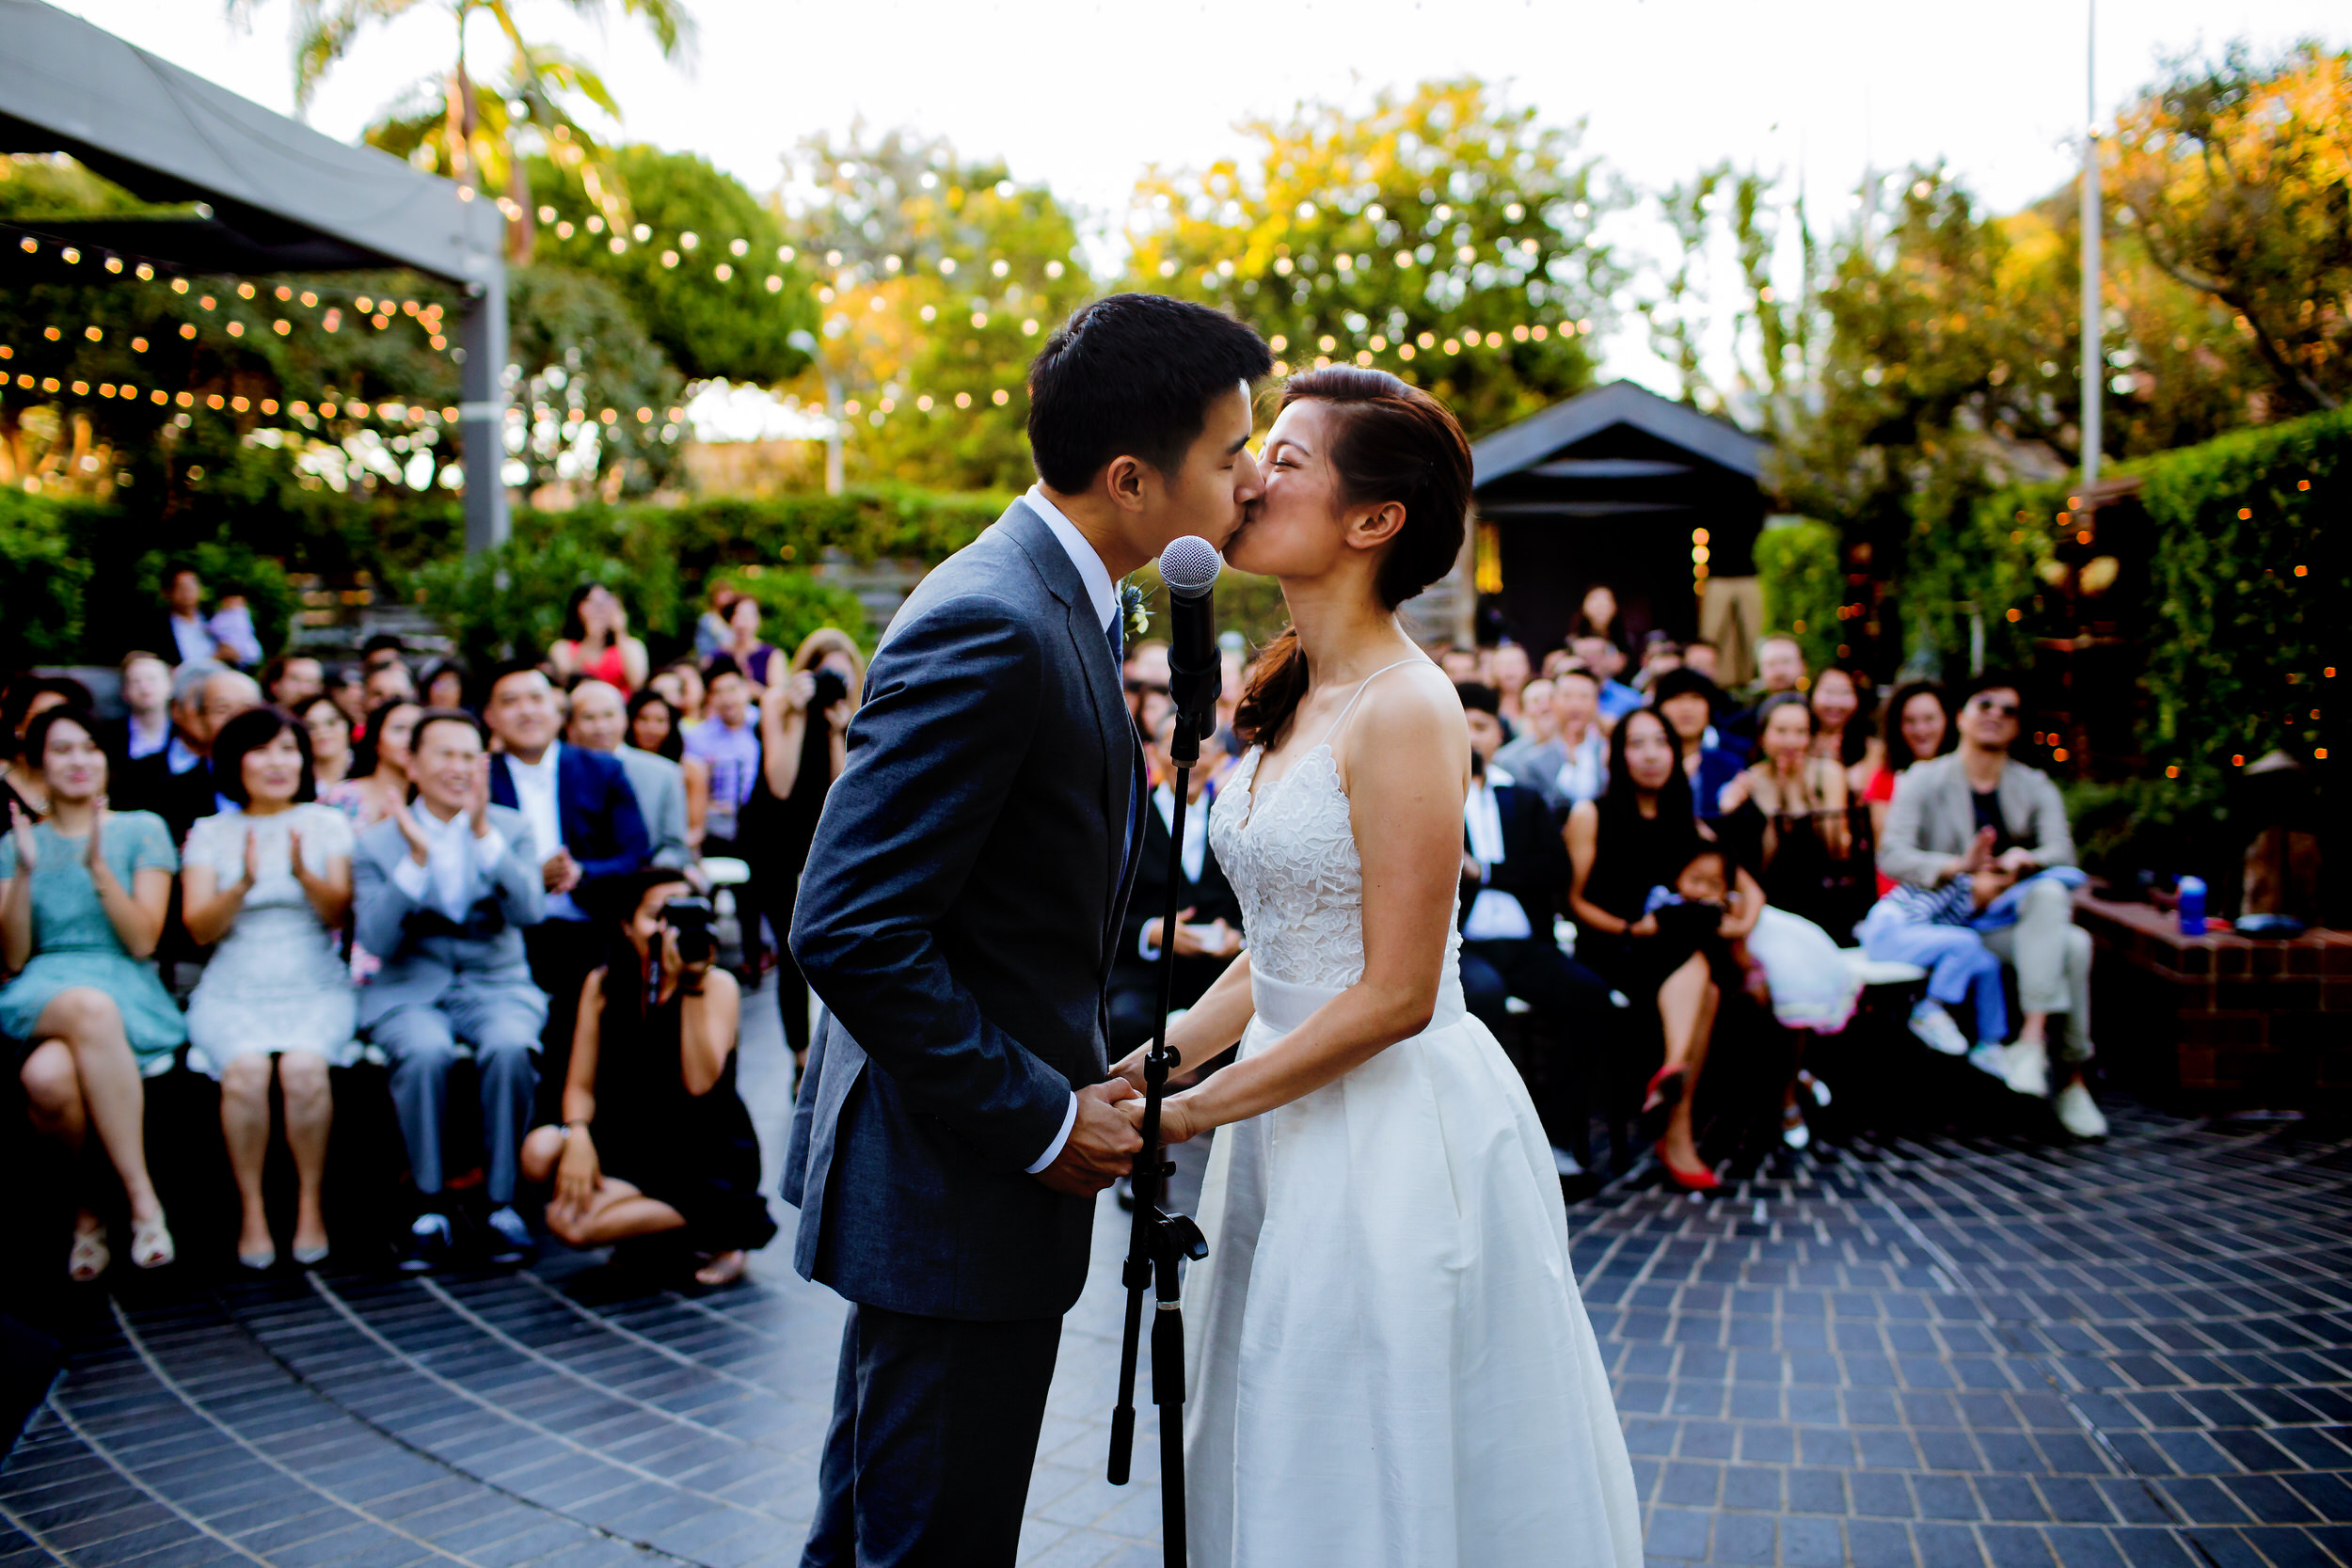 A fun LA Wedding in the city of Santa Monica at a great urban venue - Tiato Kitchen Market Garden Venue Wedding Santa Monica_004